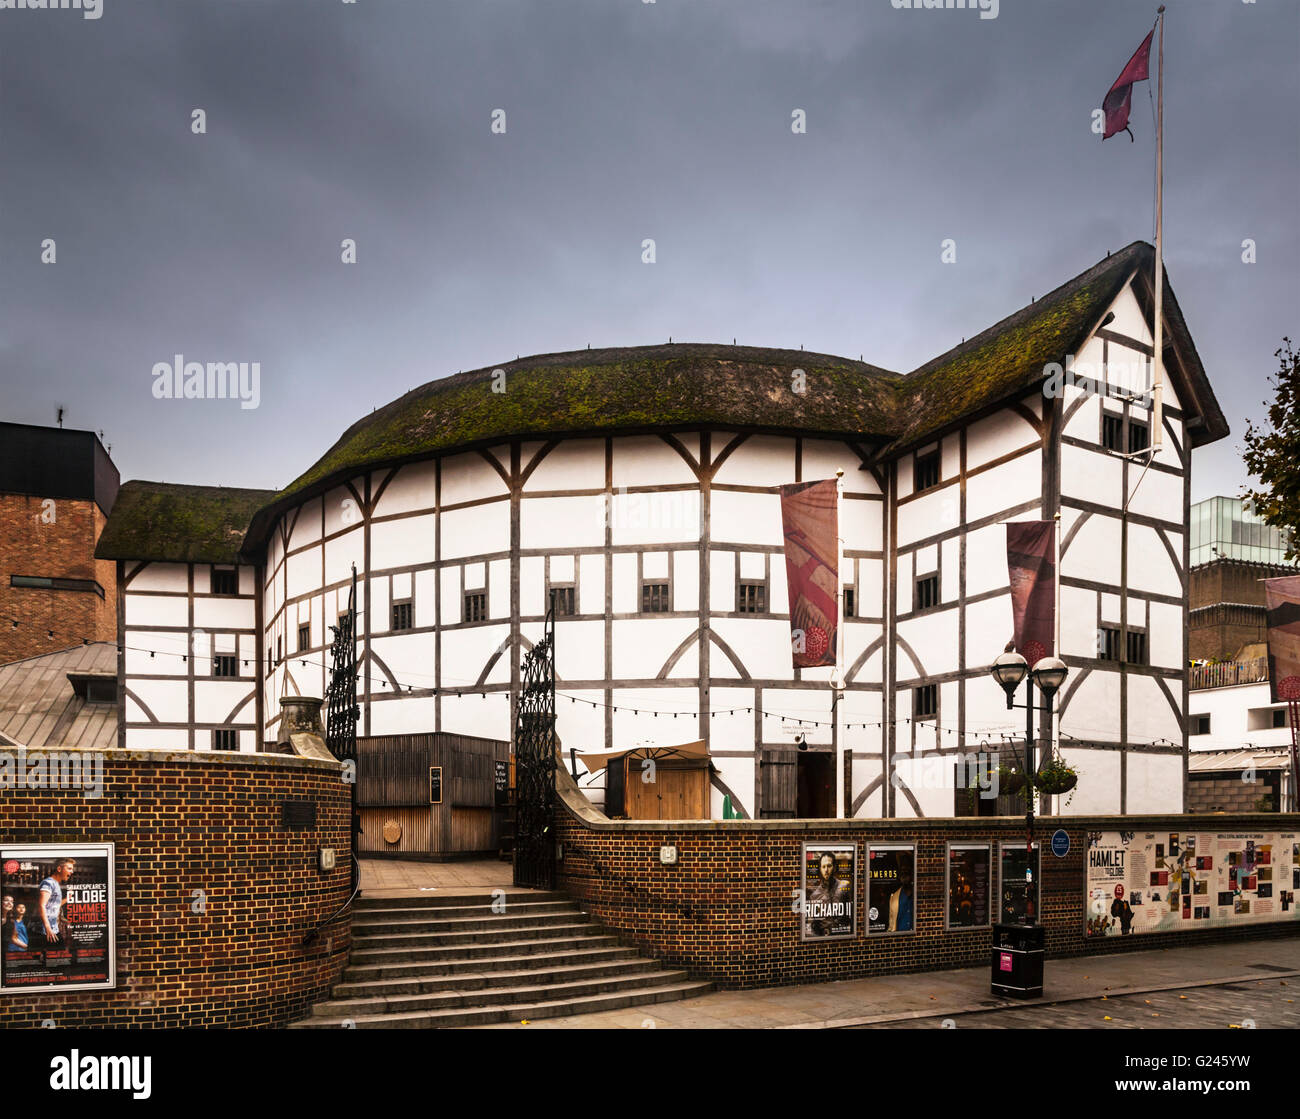 Shakespeare's Globe, une reconstruction du Théâtre du Globe, Southwark, Londres, Angleterre. Photo Stock